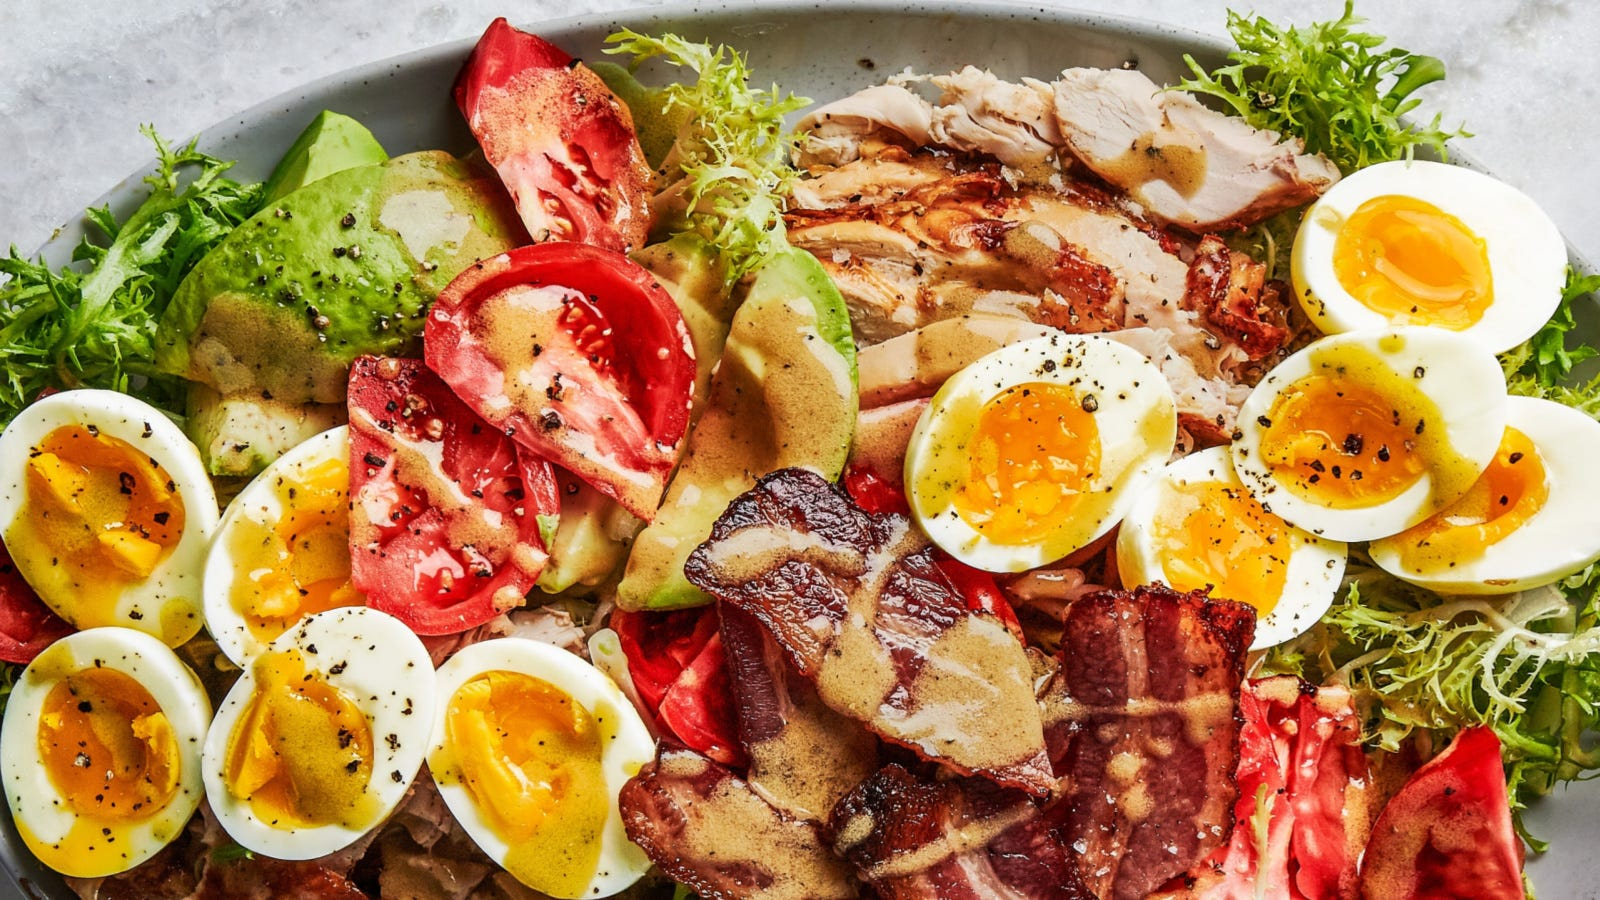 An oval plate filled with a heaping pile of greens topped with avocado and tomato slices, crispy bacon, and halved boiled eggs all topped with a bacon vinaigrette.